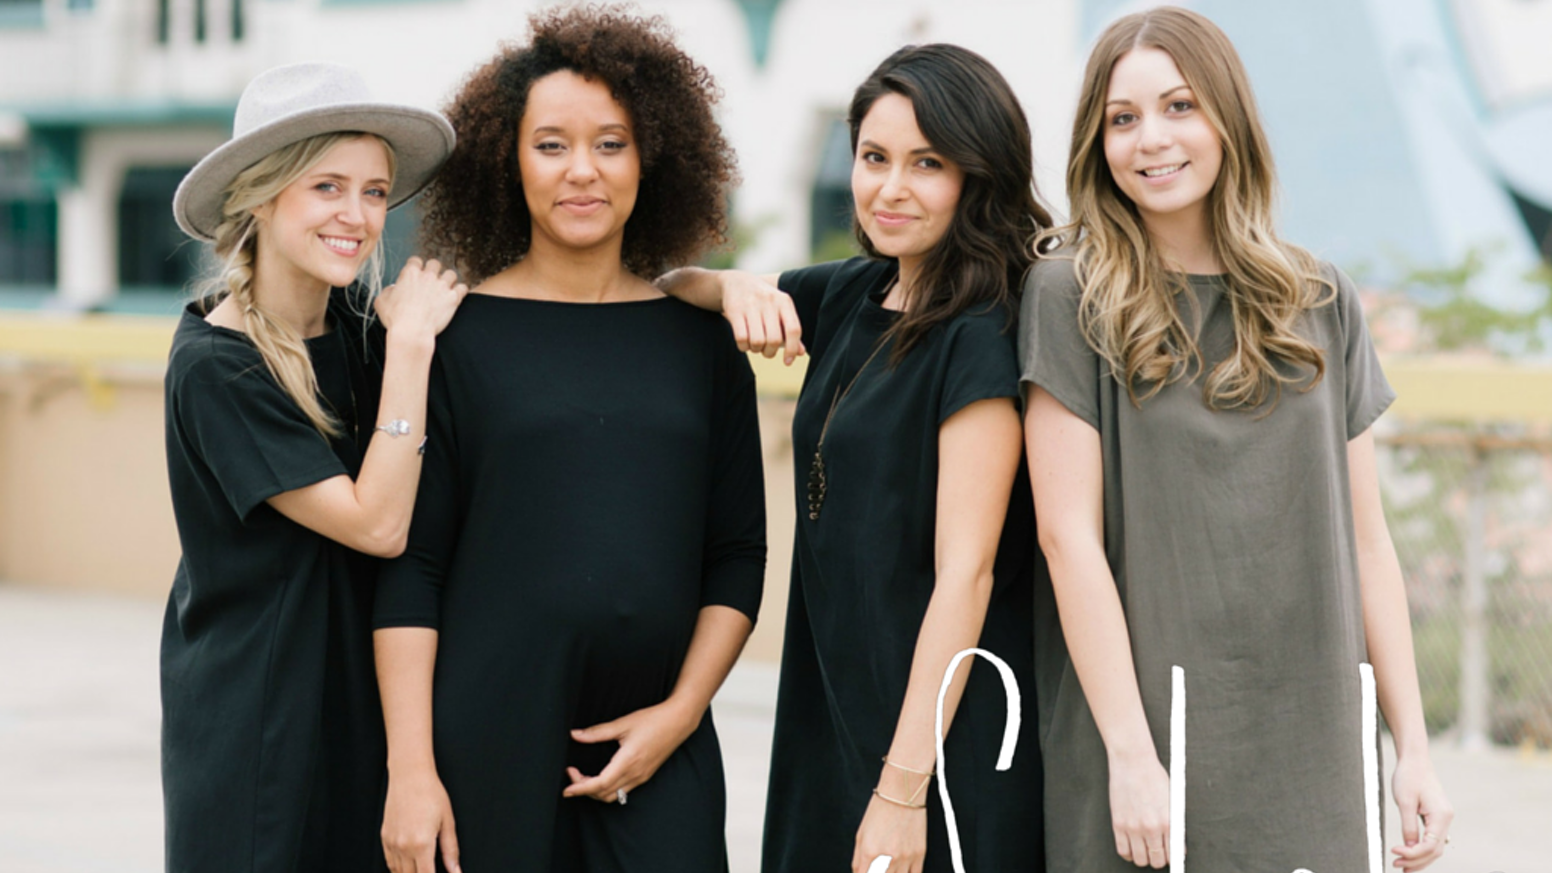 Whenour bodies change, our styles shouldn't have to.Sotela is designed for the everyday ever-changing you. The Essential Dresses span multiple sizes leaving room for ourdynamic bodies to stretch and grow in the beautiful and natural ways they do.